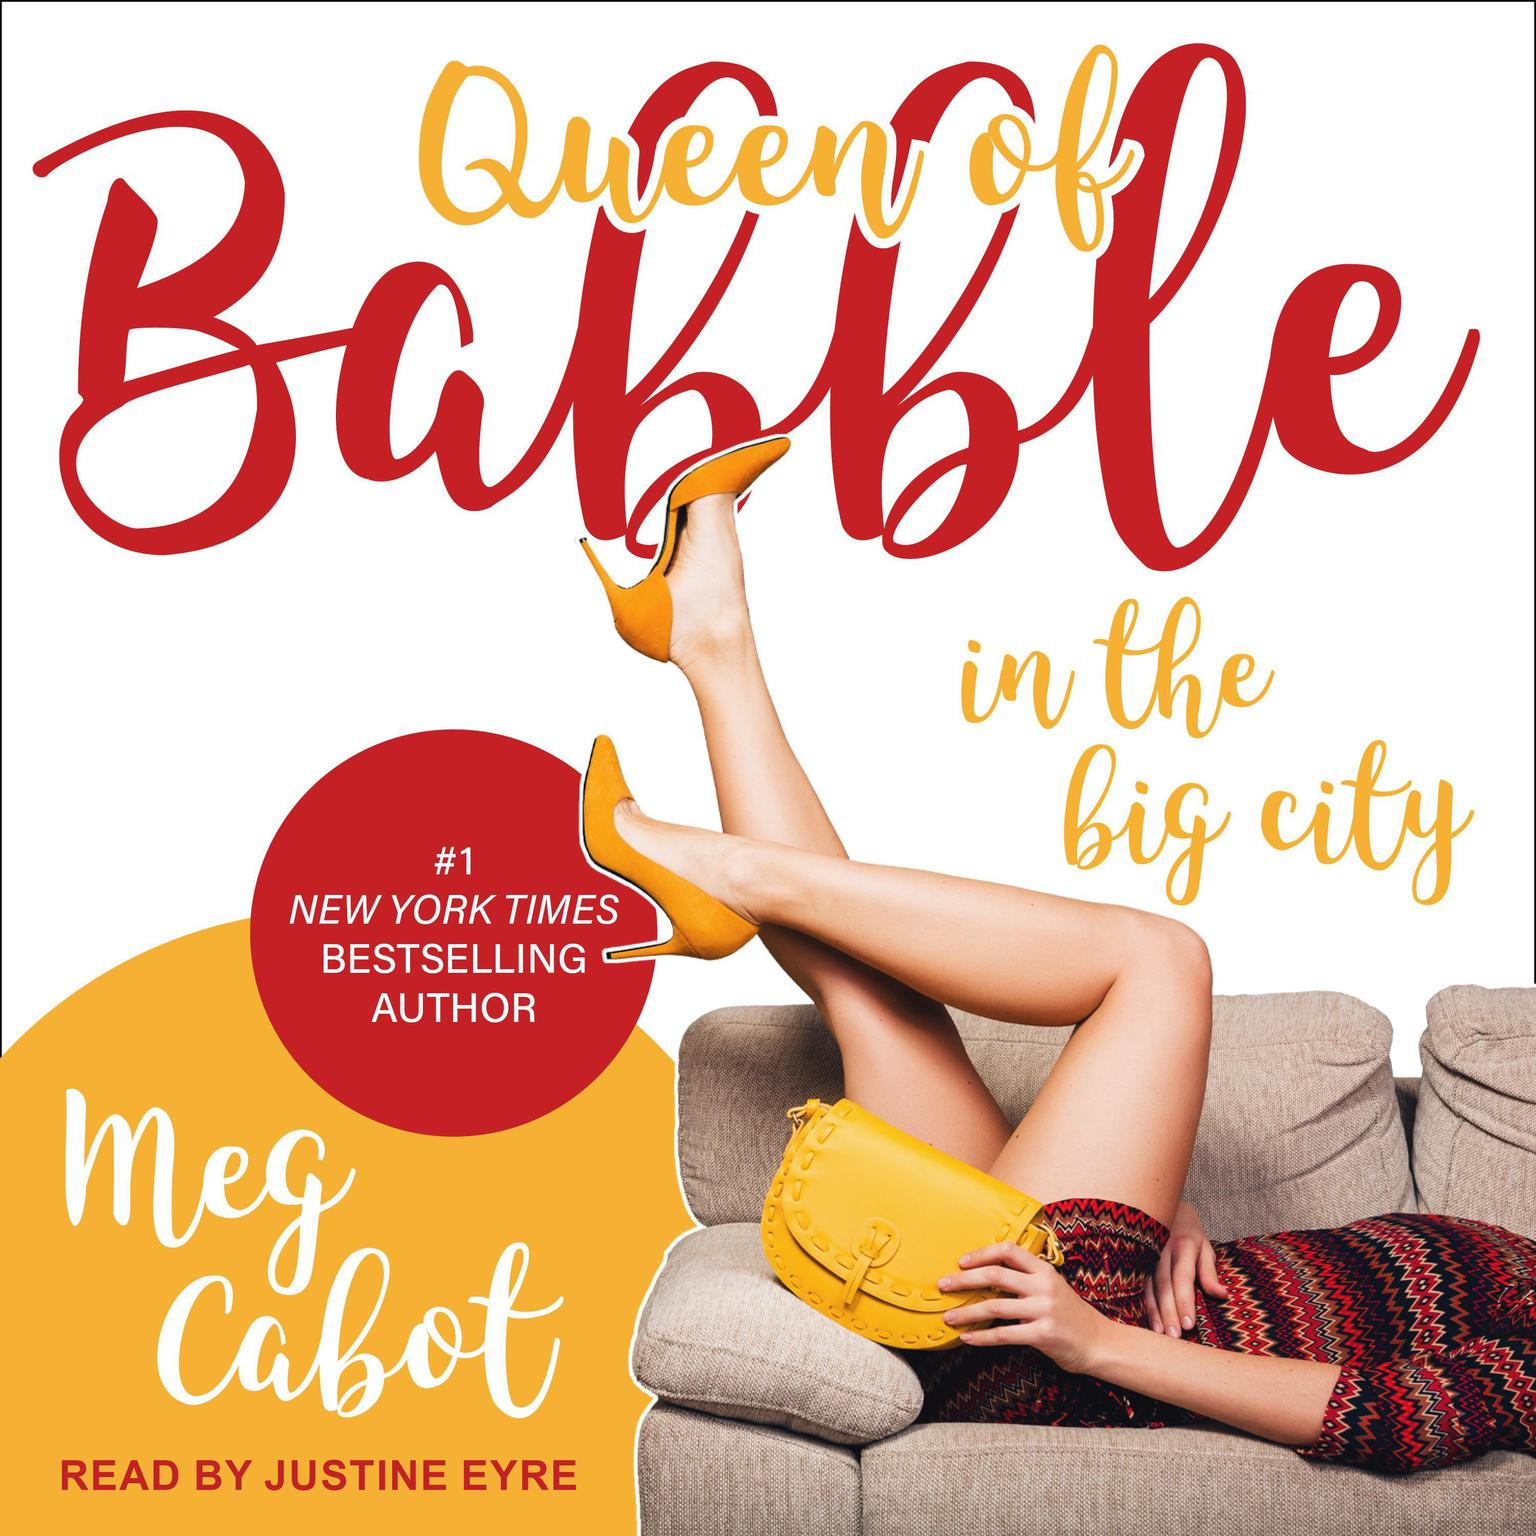 Printable Queen of Babble in the Big City Audiobook Cover Art